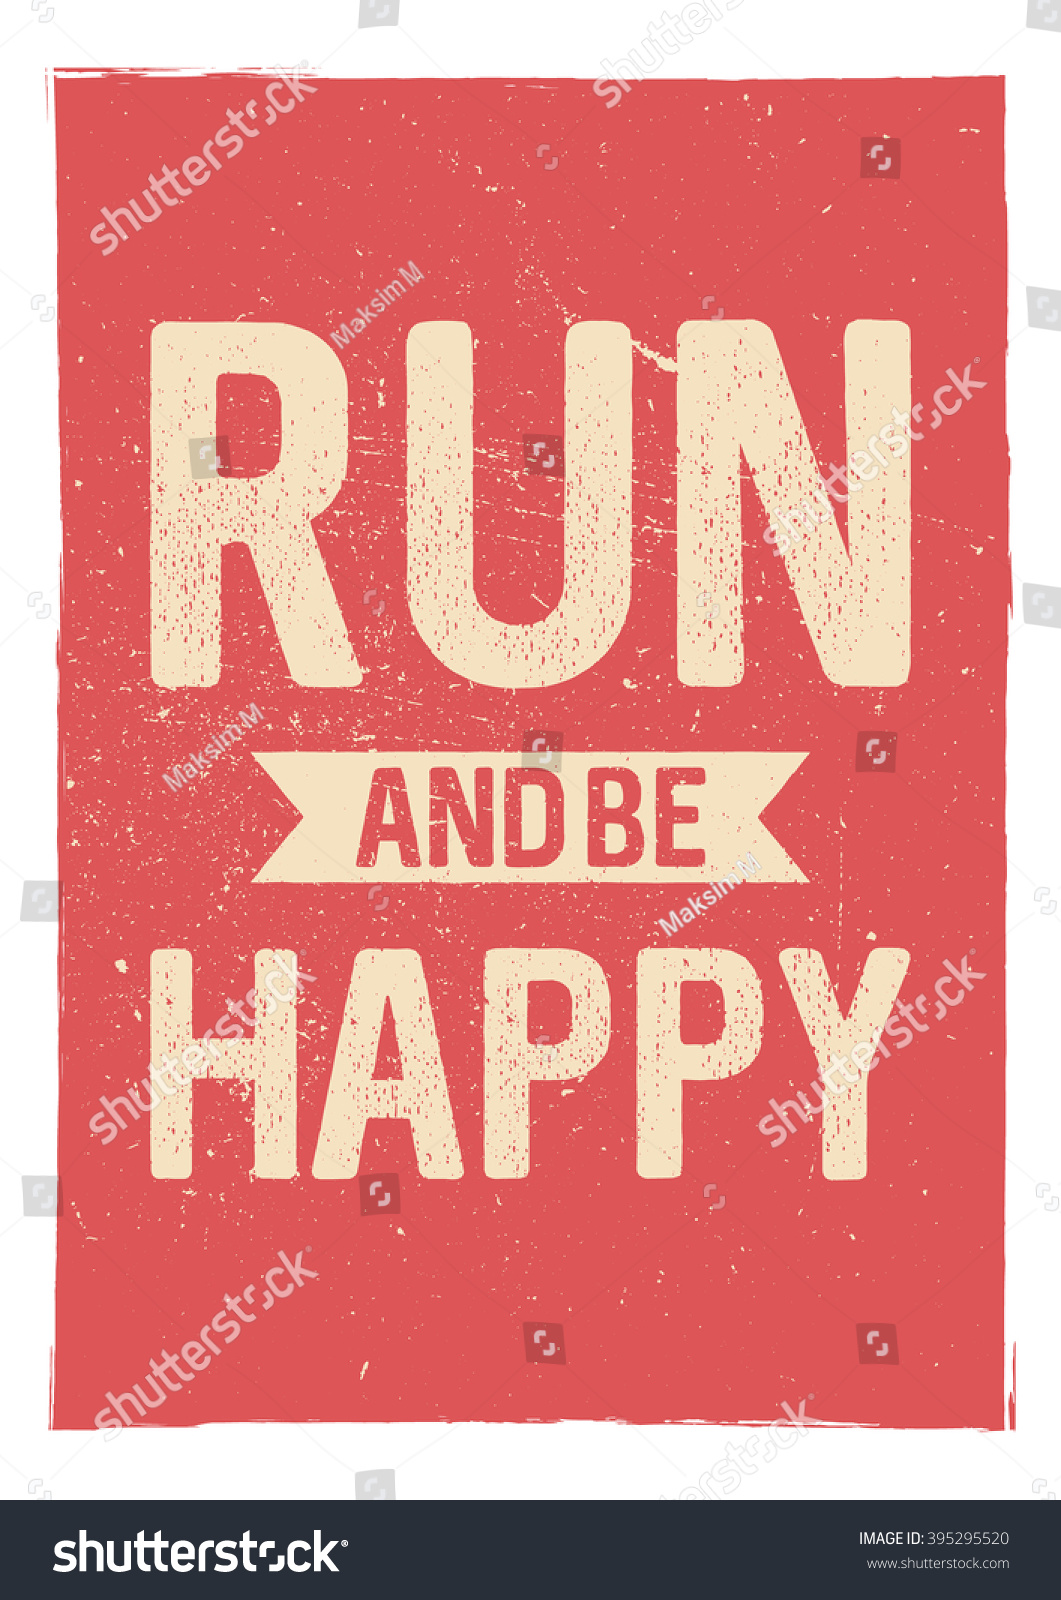 Poster design quotes - Run And Be Happy Motivational Phrase Unusual Gym Poster Design Marathon Inspiration